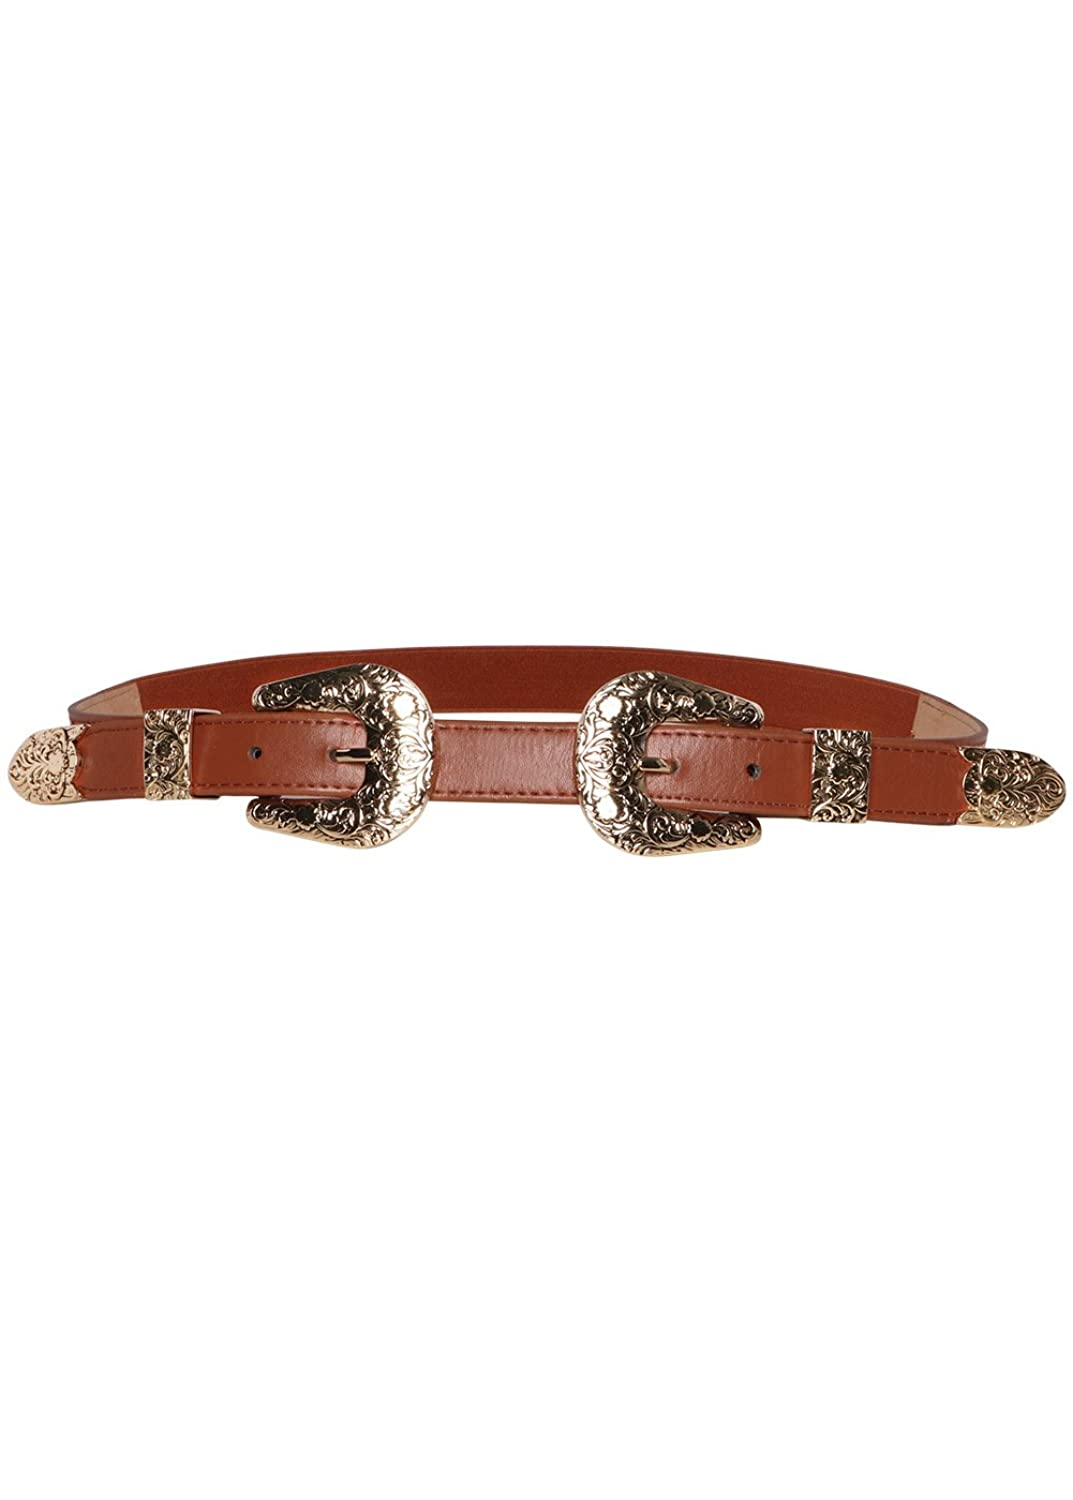 Wink Gal Women's Western Metal Leather Deluxe Double Buckle Belt Elastic Thin Band